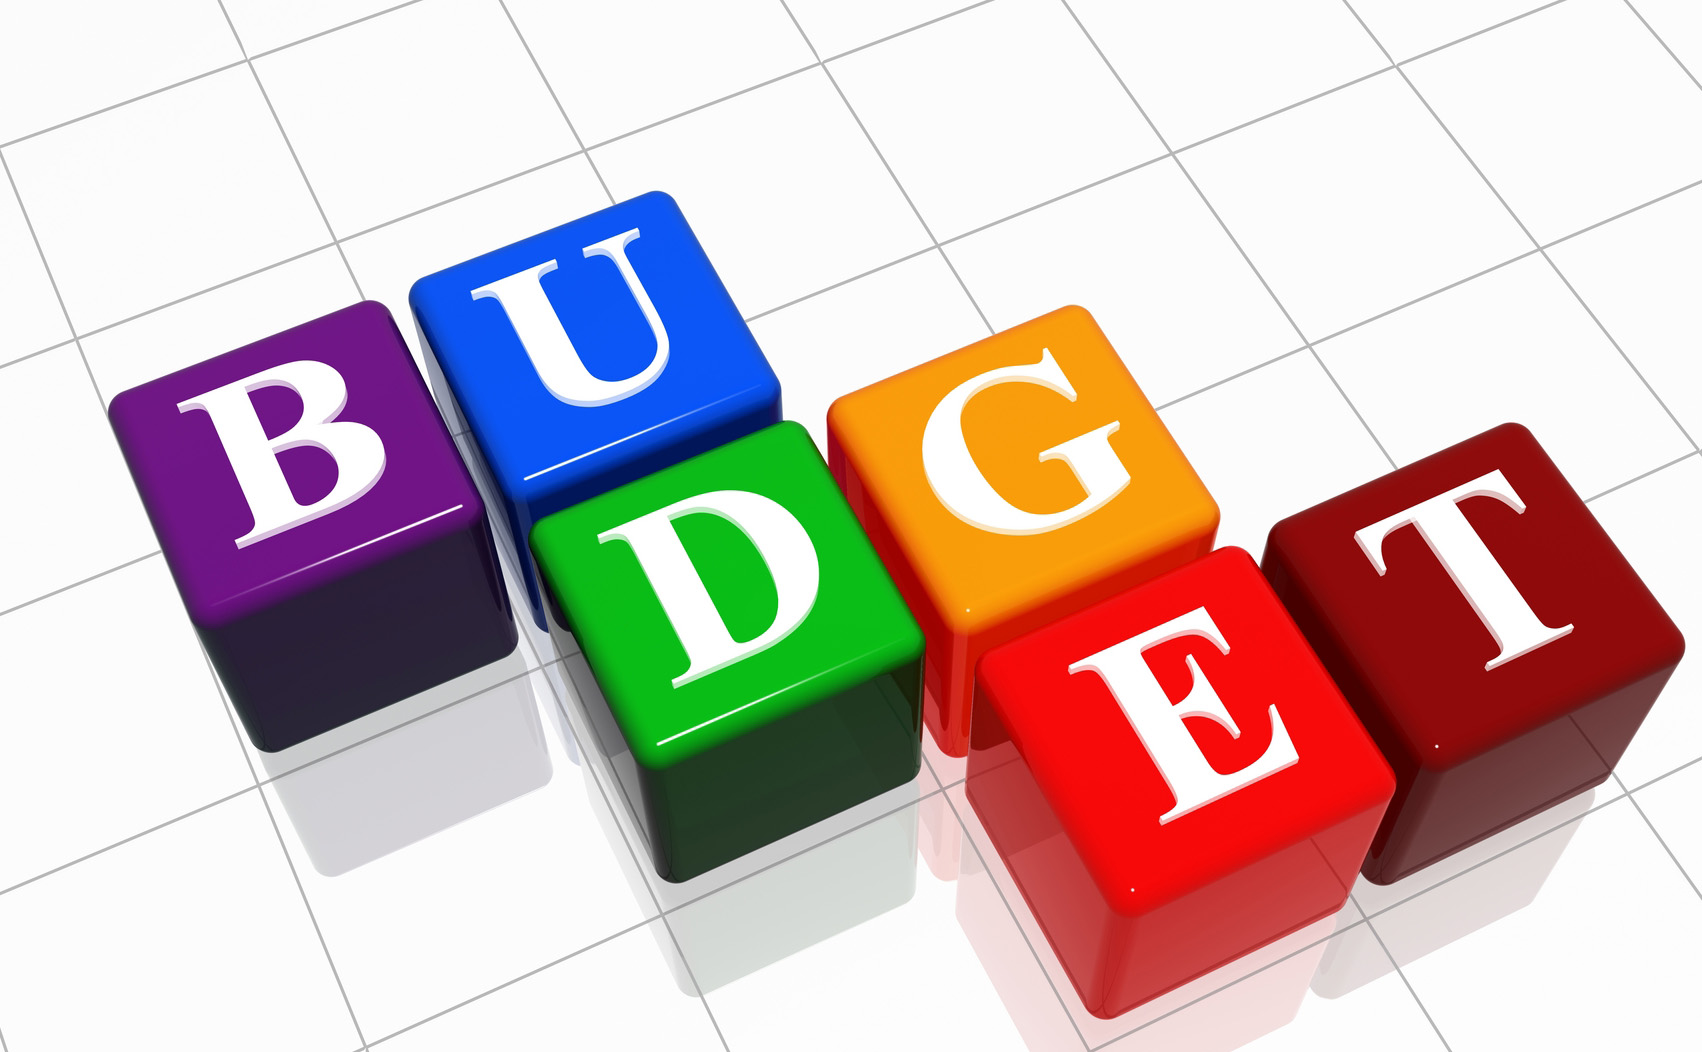 Union Budget, Budget and real estate, Property market and budget, Budget disappoints real estate, budget disappoints home buyers, Budget pains & gains, Real estate expectations with budget, Builders hope on budget, Finance Minister fails real estate, Budget and affordable housing, India real estate news, Indian realty news, Real estate news India, Indian property market news, Track2Realty